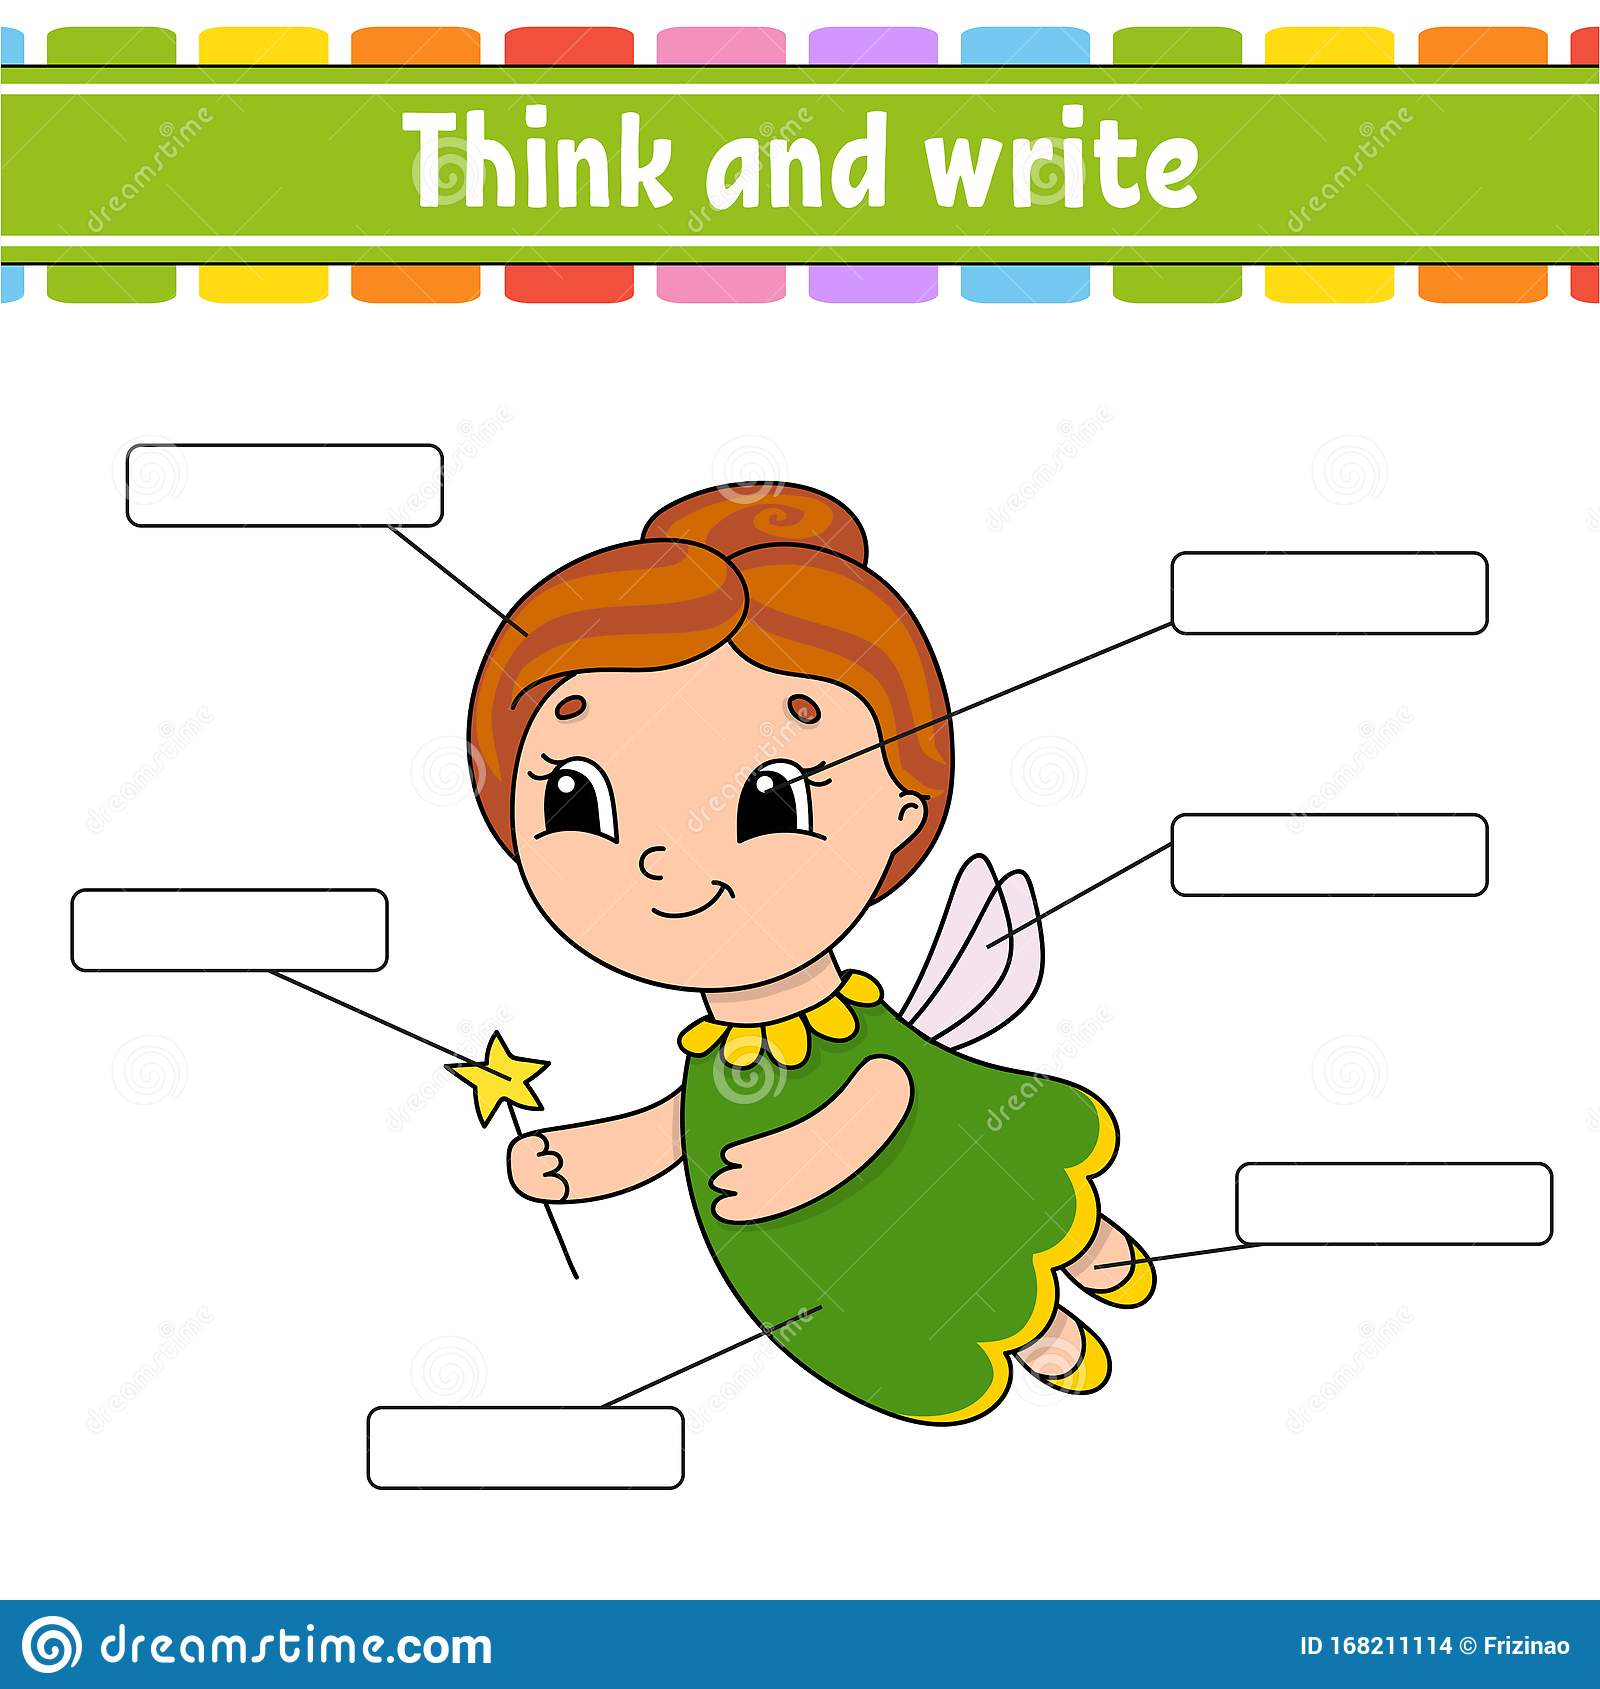 Elderly Fairy Think And Write Body Part Learning Words